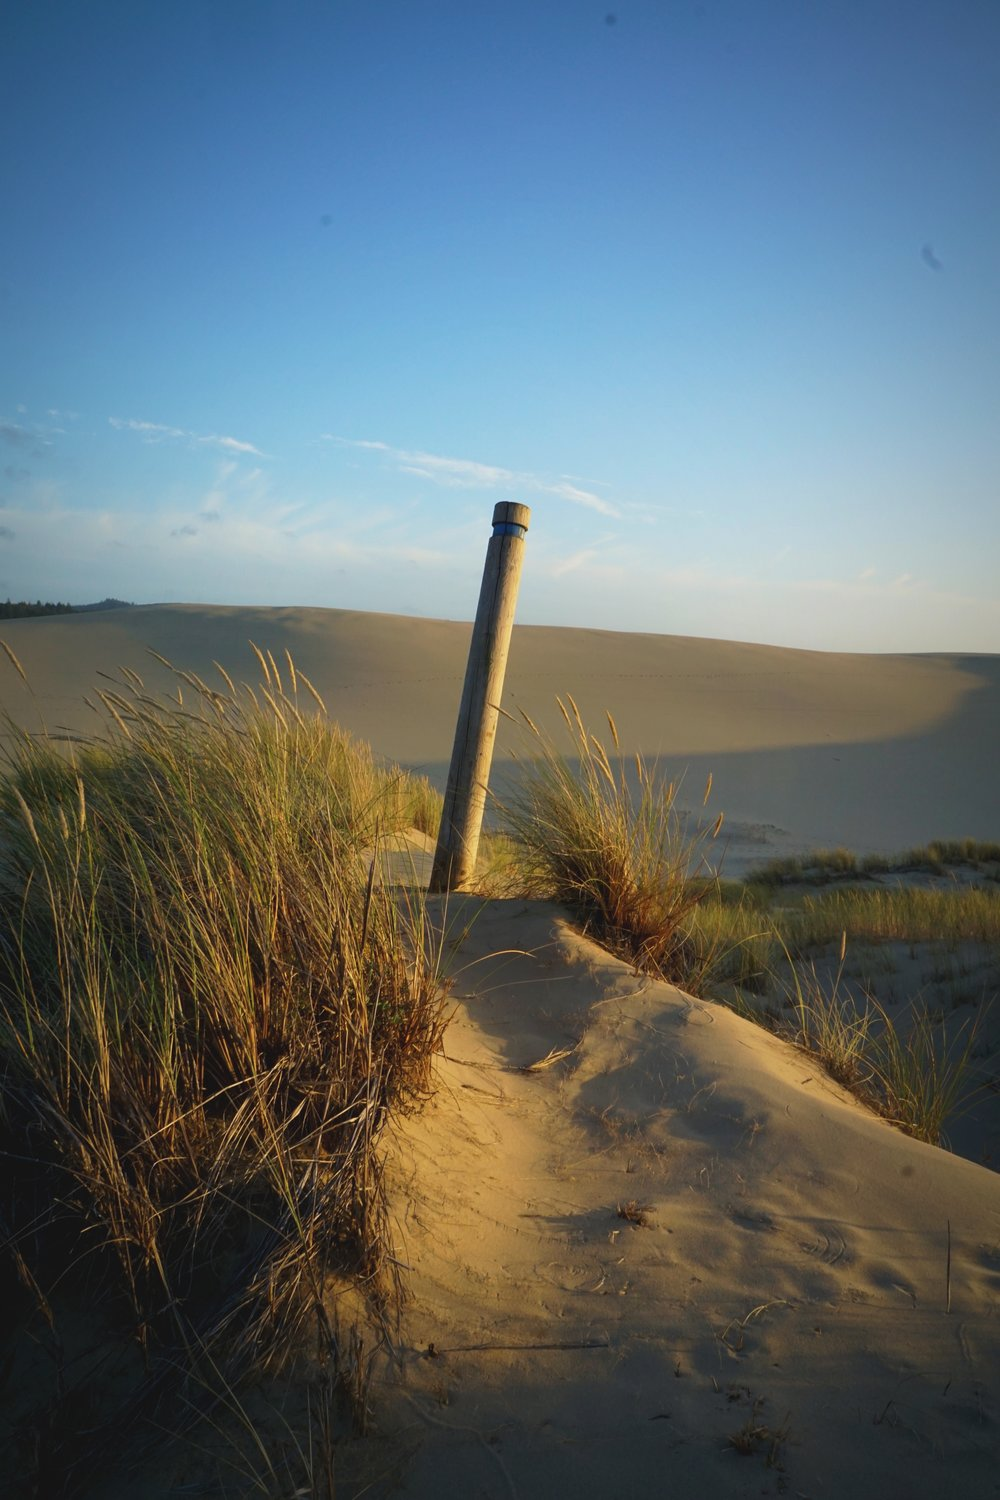 These posts help you find your way through the dunes and to the beach.